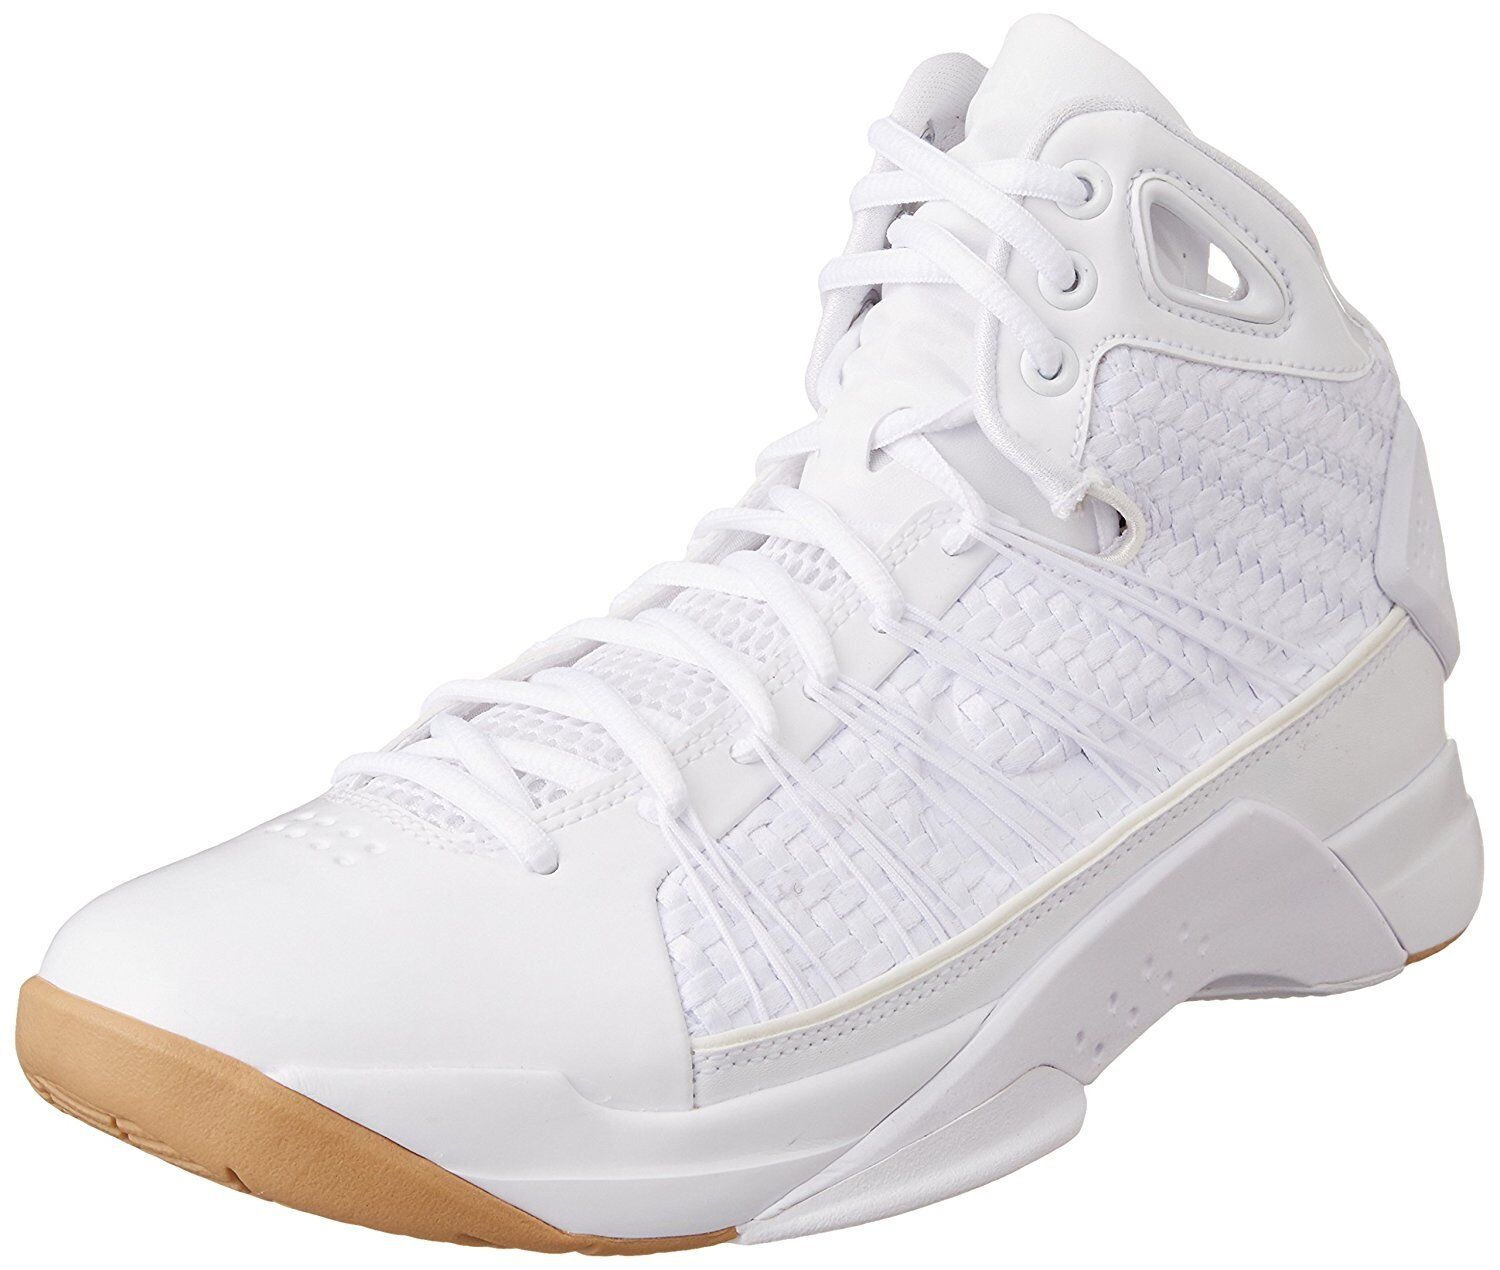 594affd882ef Mens Nike Hyperdunk Lux Basketball Shoes 818137-100 Sz 11 White for sale  online